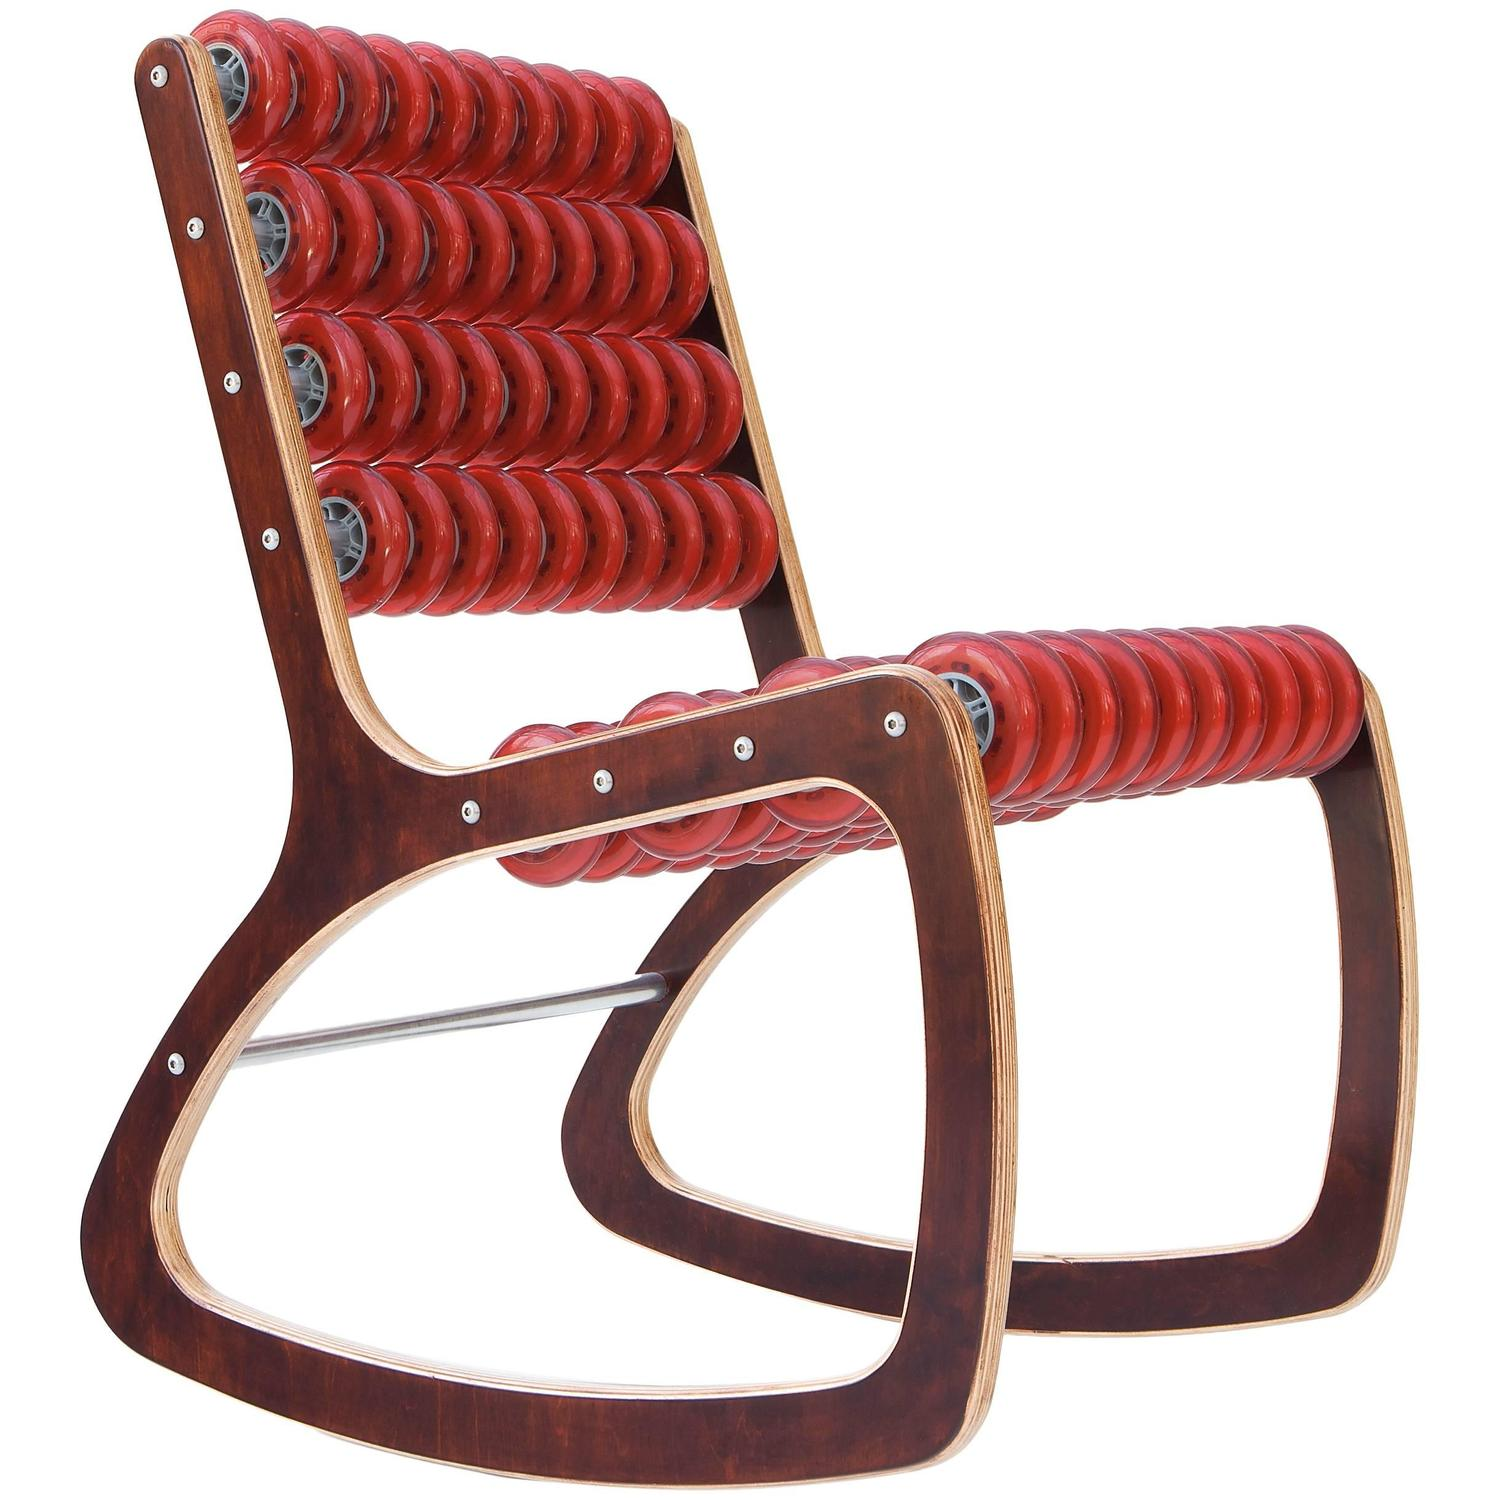 Red Rocking Chair Razor Rocker Rocking Chair In Walnut And Translucent Red